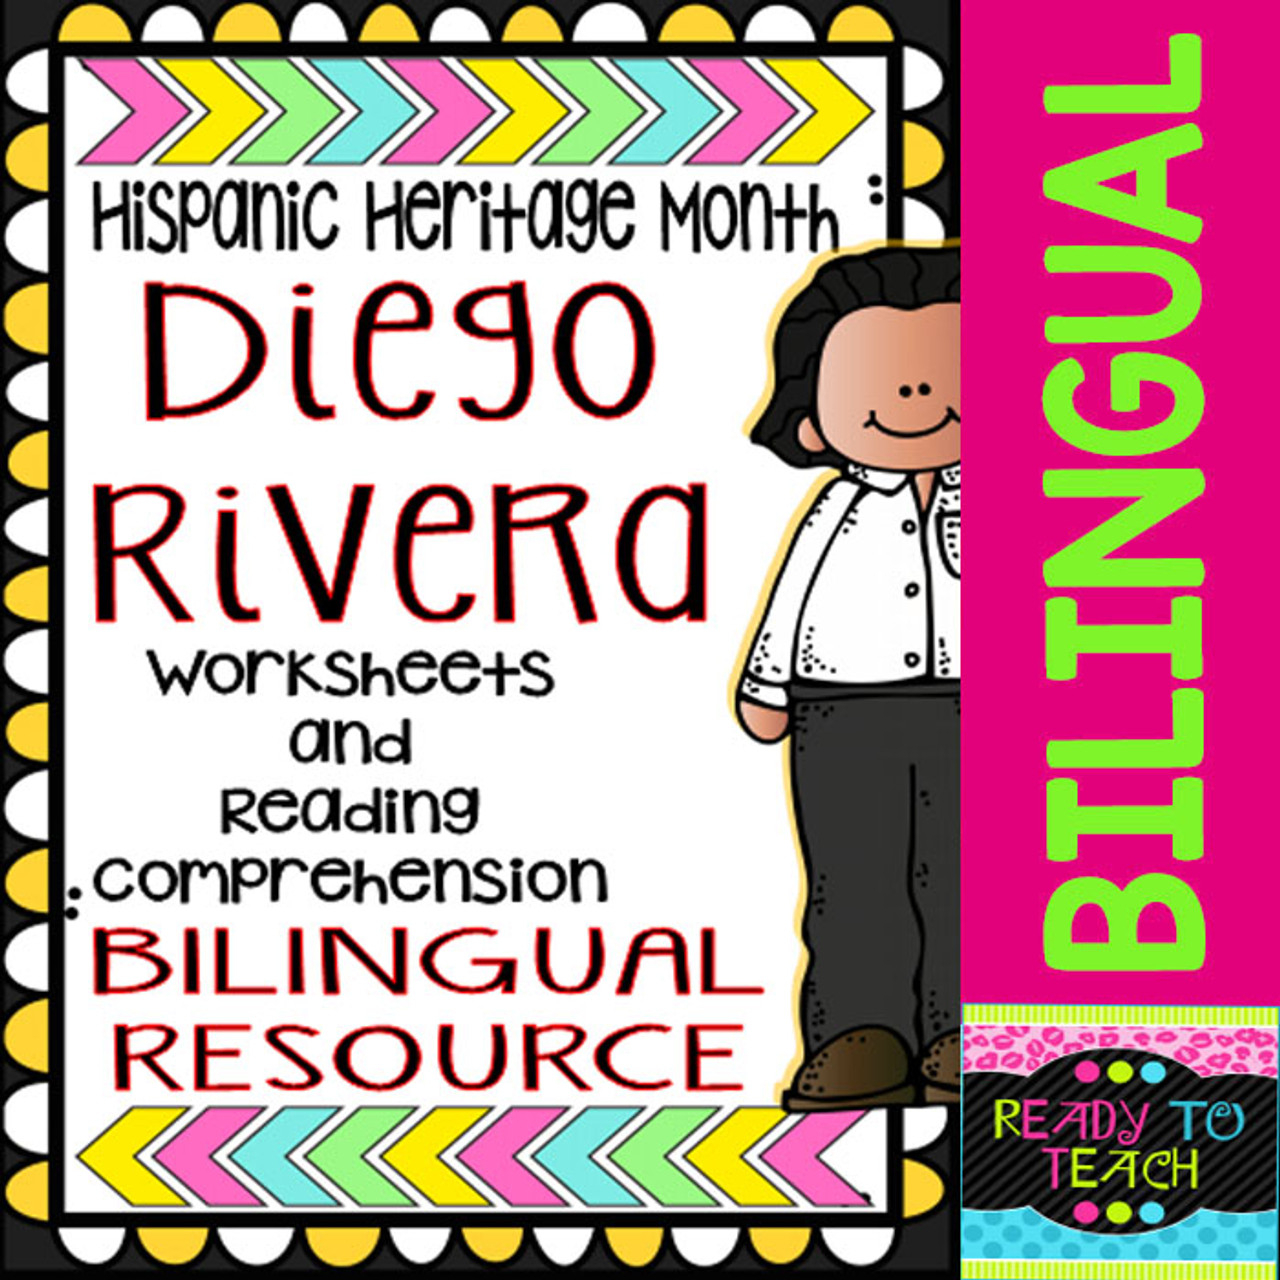 Hispanic Heritage Month Diego Rivera Worksheets And Readings Bilingual Amped Up Learning